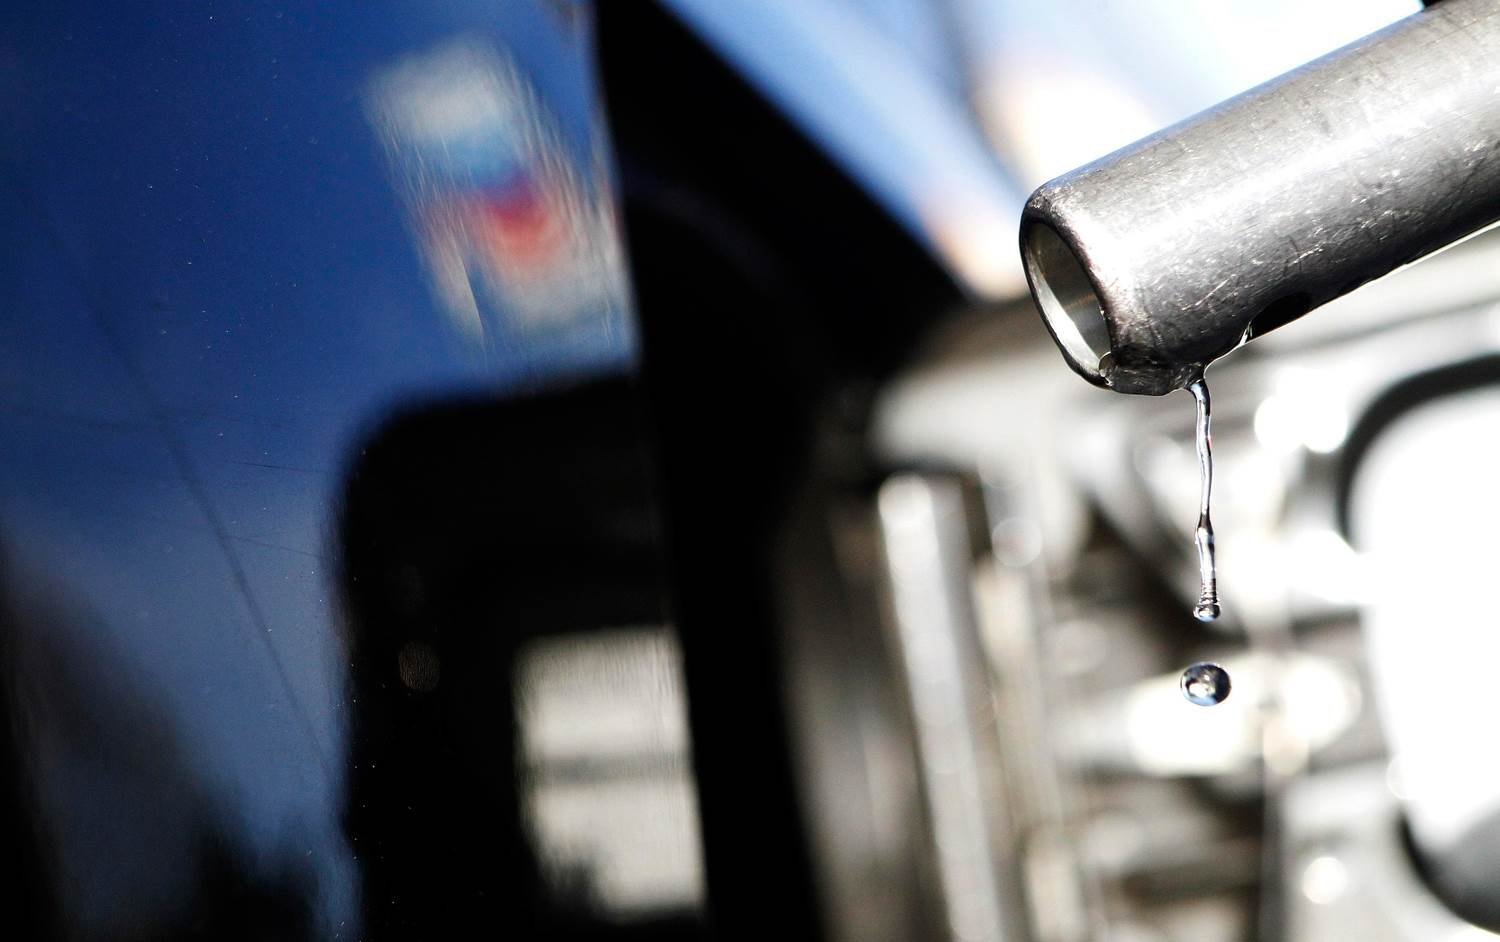 Average gas price drops slightly to $2.40 a gallon